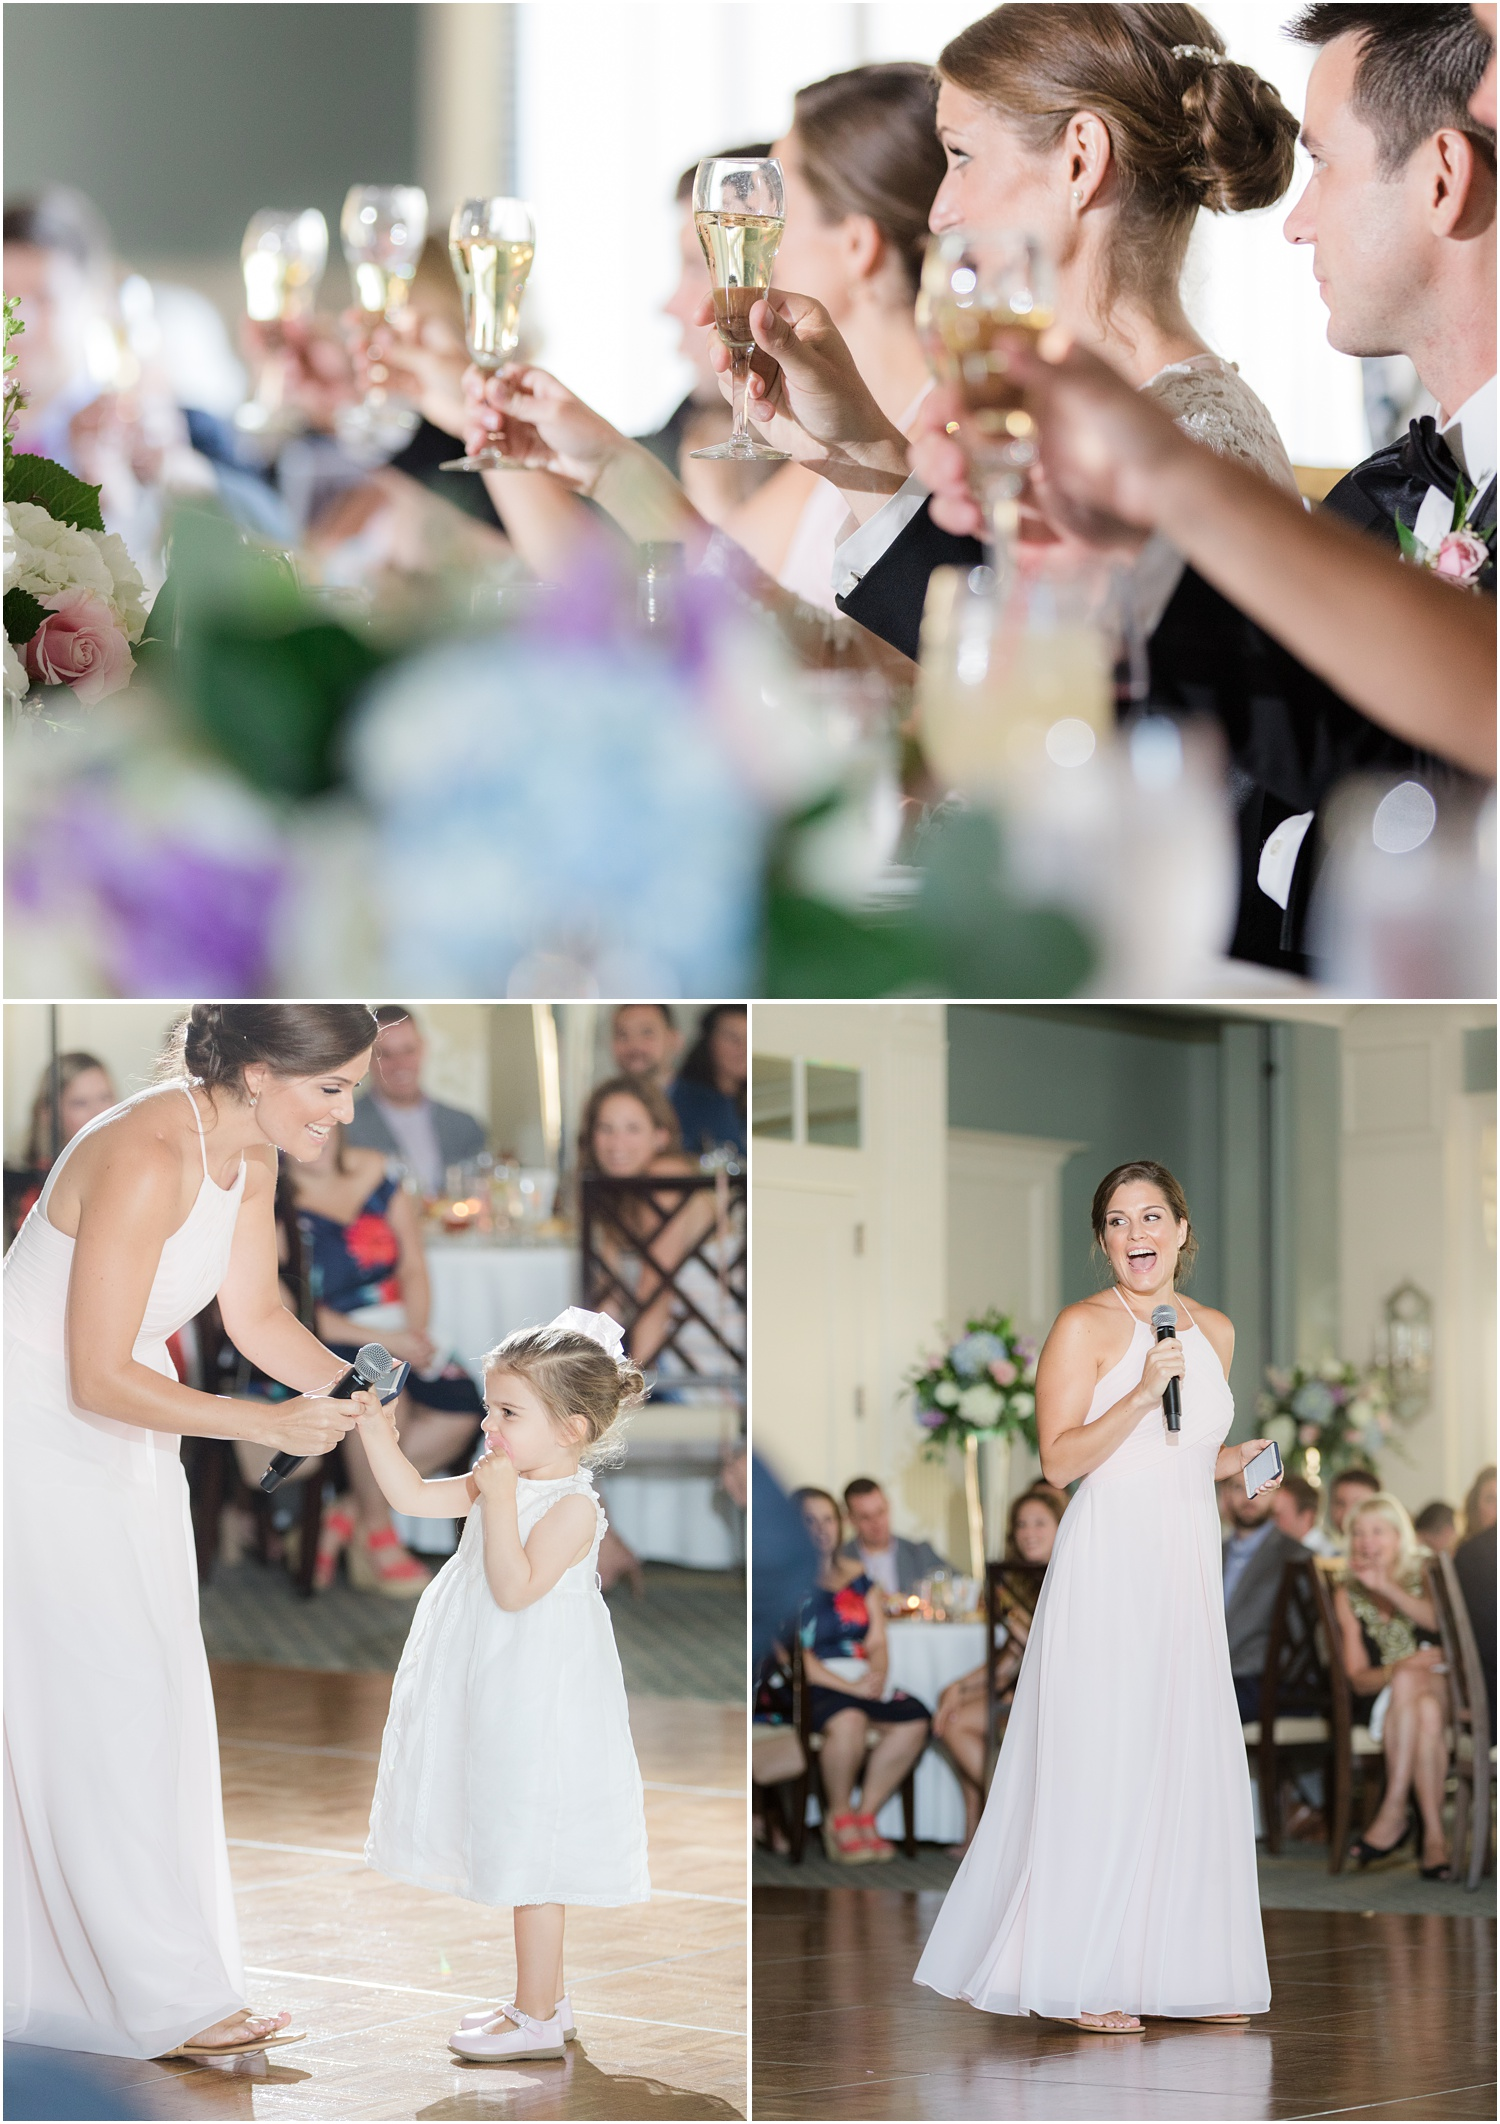 Maid of honor speech at Canoe Brook Country Club in Summit, NJ.